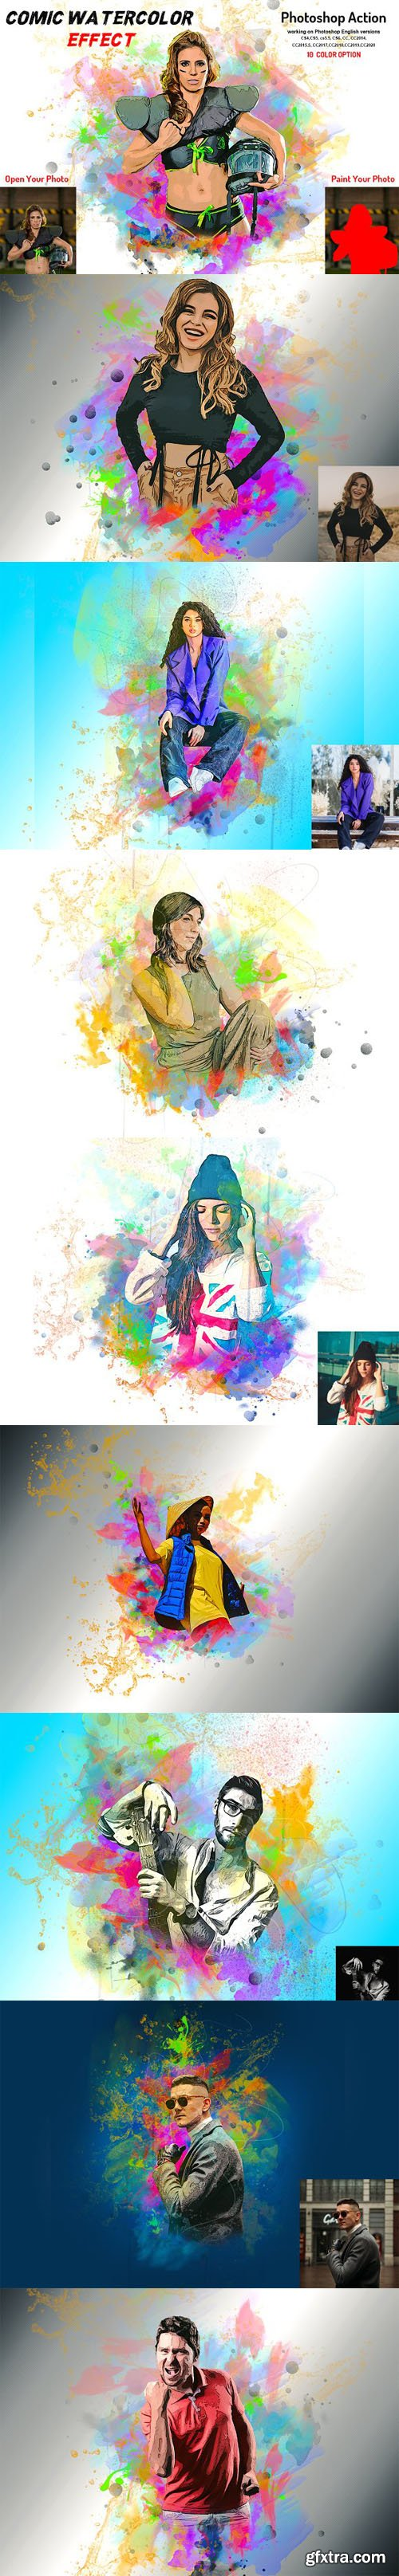 Comic Watercolor Effect Action for Photoshop + Brushes